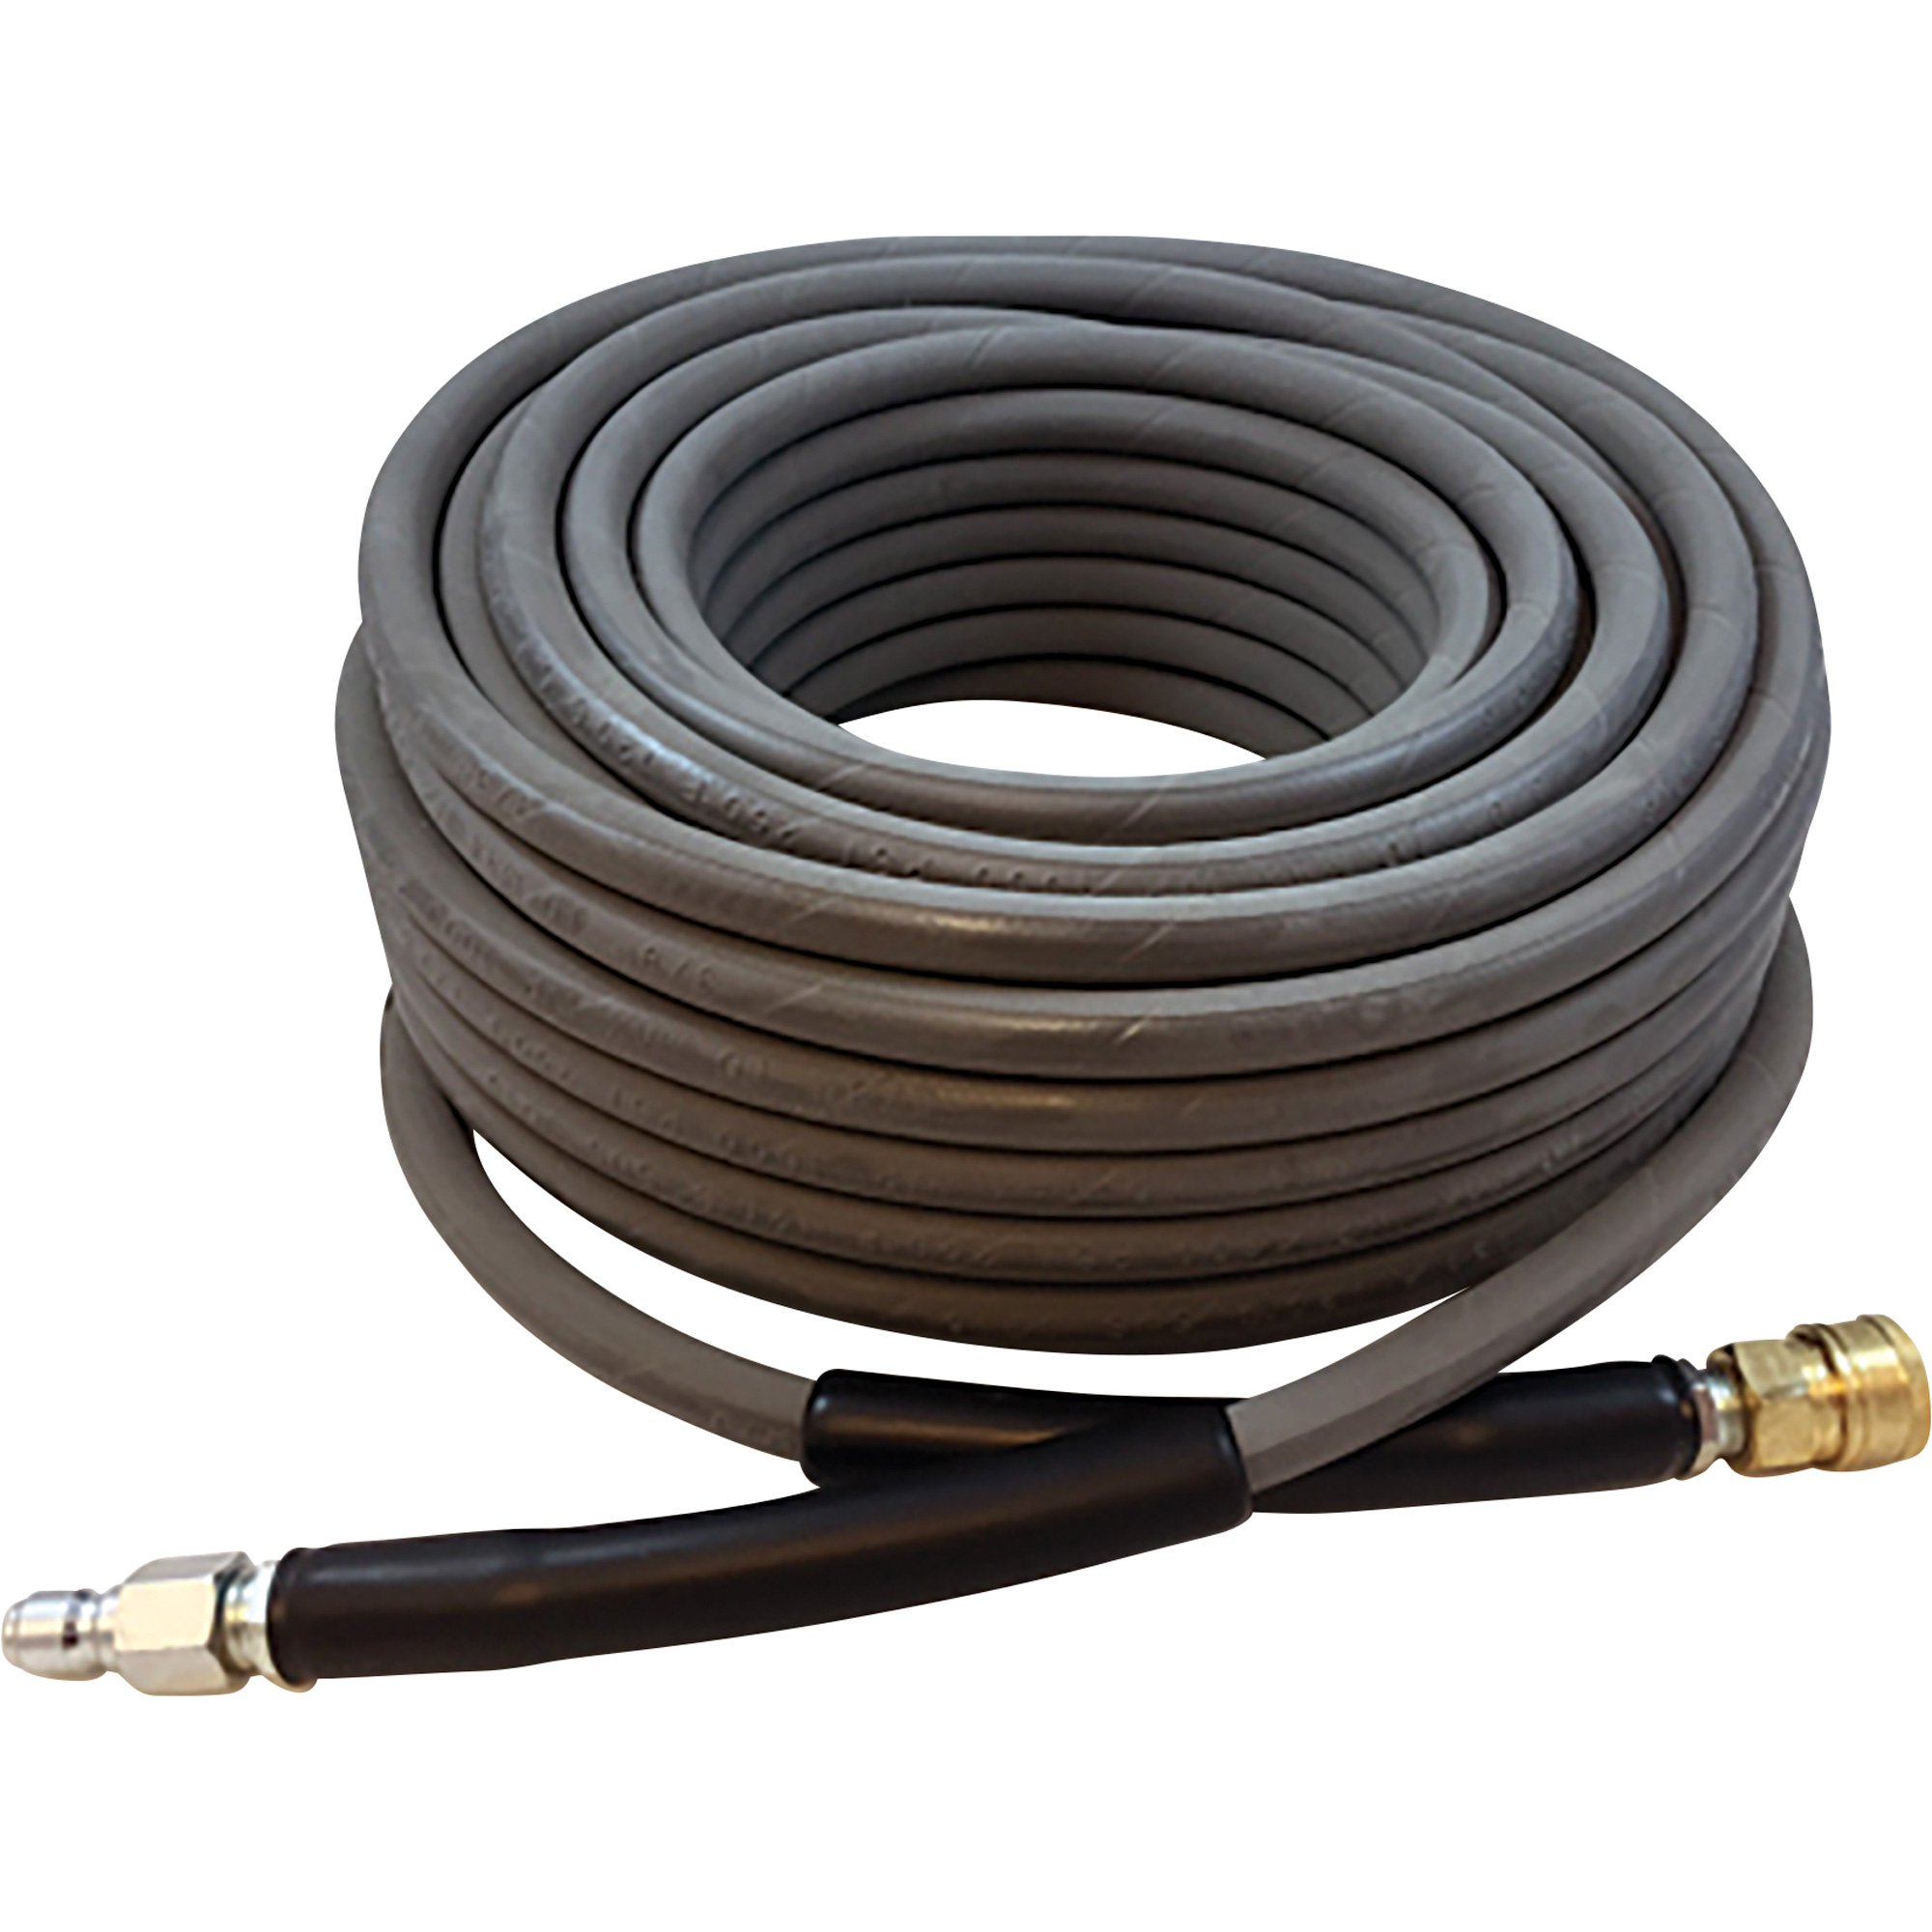 NorthStar Nonmarking Pressure Washer Hose - 4000 PSI 100ft. x 3/8in. - 42952 - 989401981